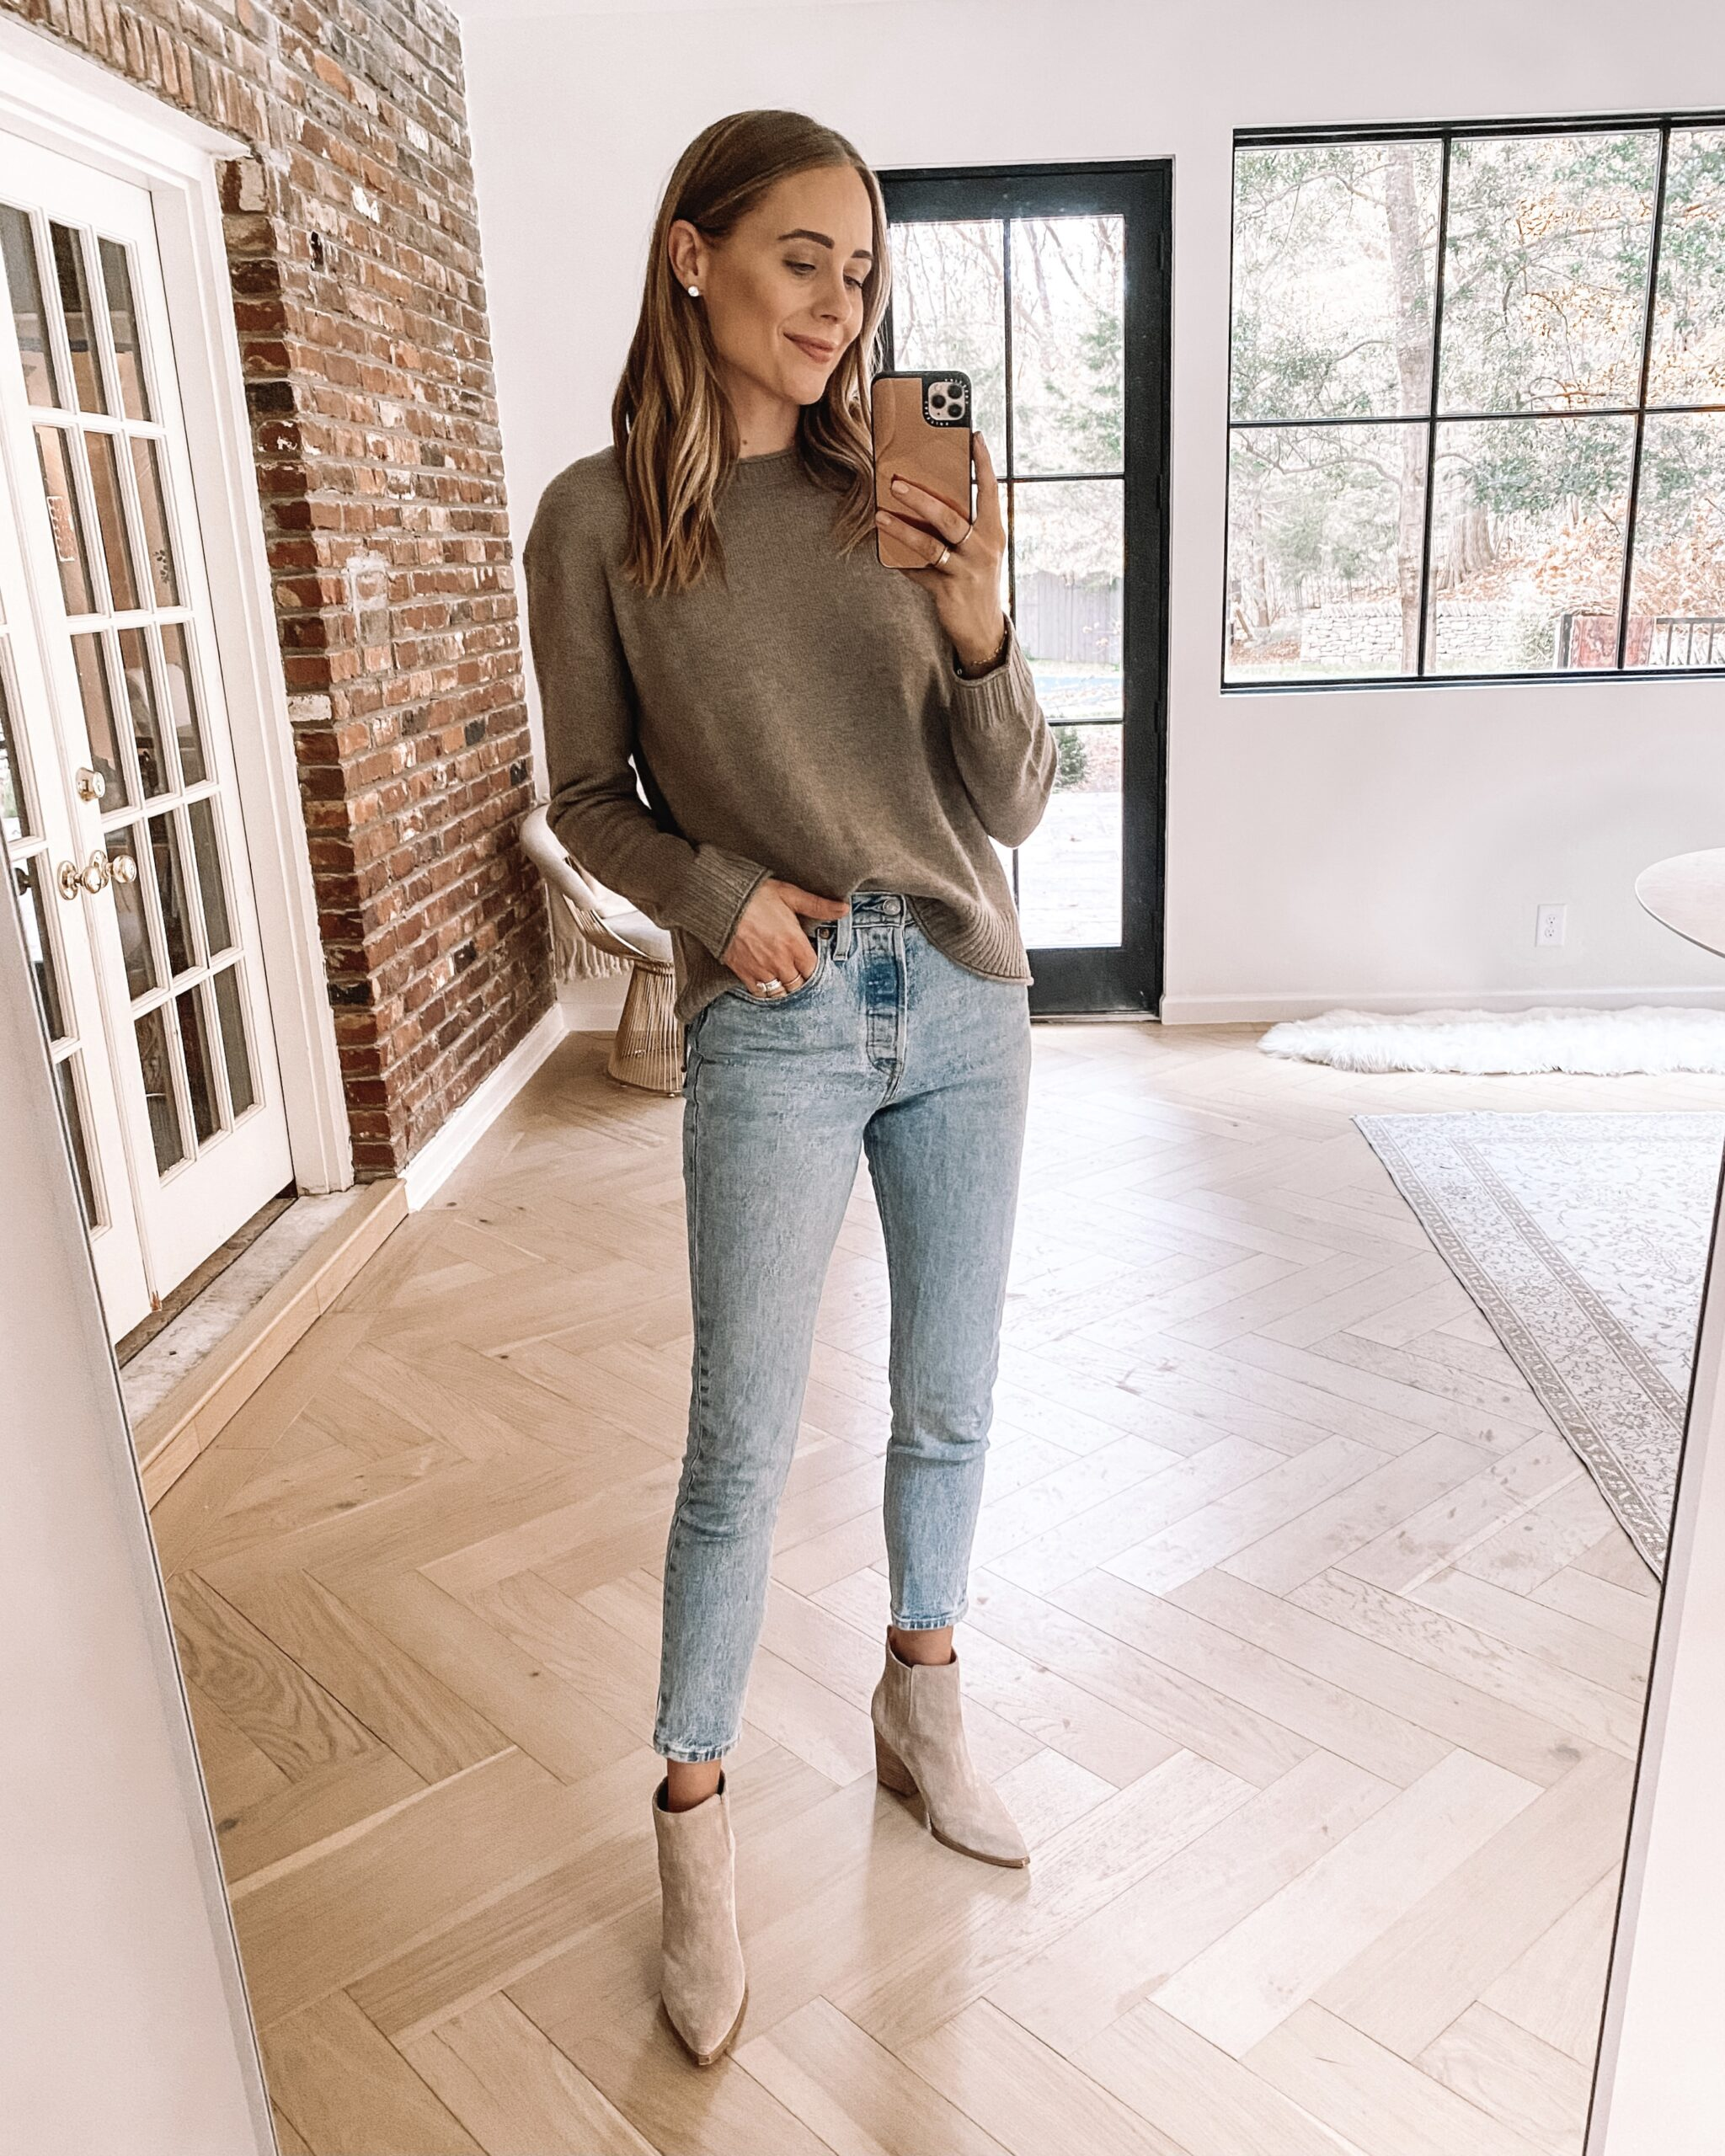 Fashion Jackson Wearing Taupe Jenni Kayne Everyday Sweater Denim Skinny Jeans Tan Suede Booties